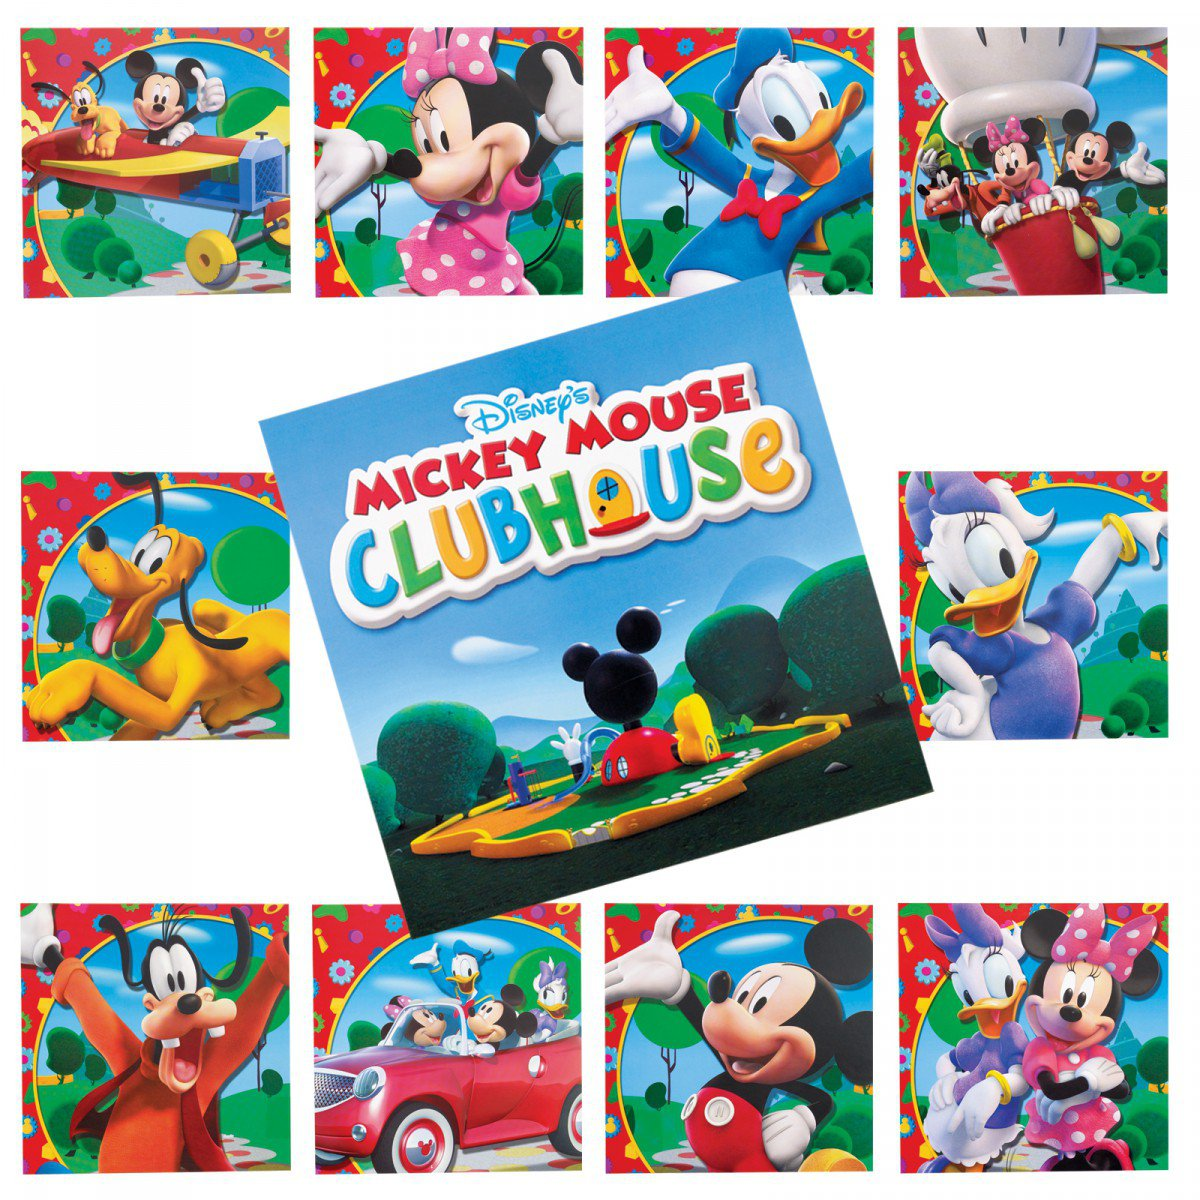 Mickey Mouse Clubhouse Invitation Template Ideas Free 2016